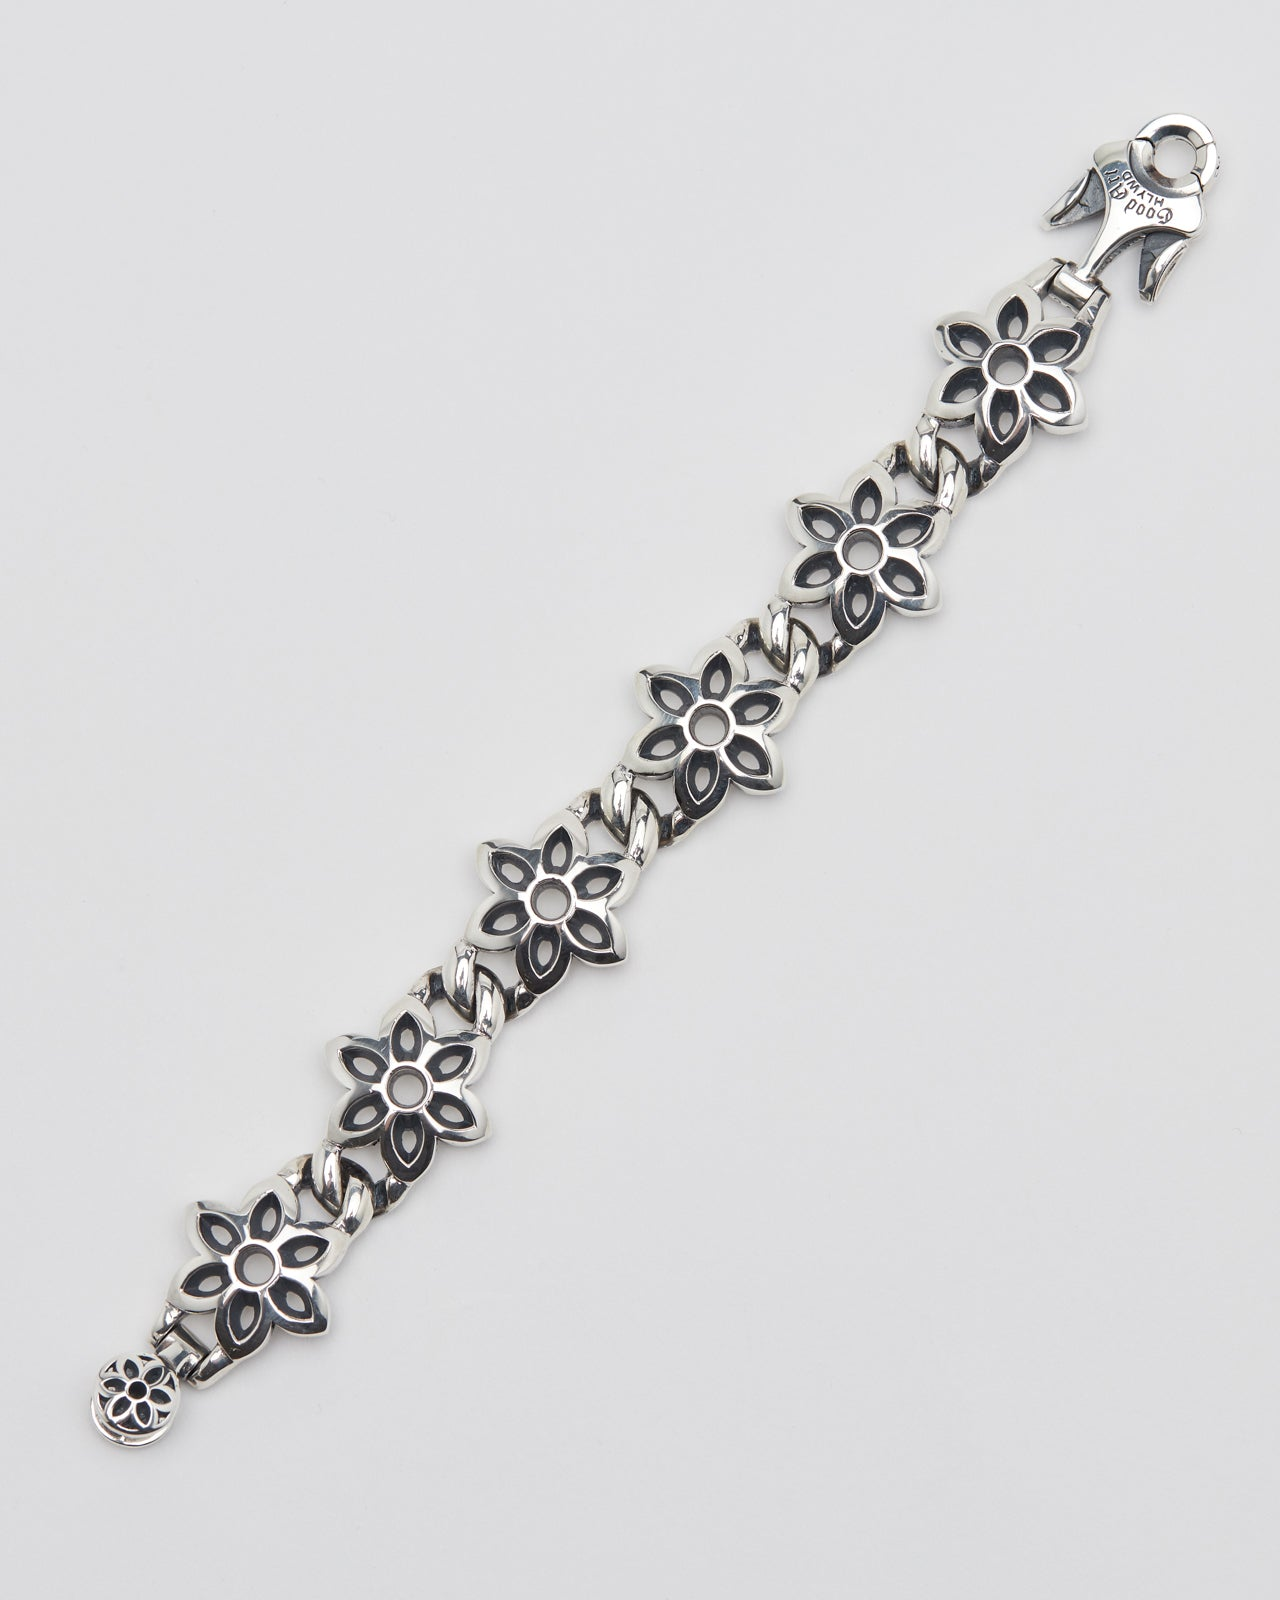 Model 10 Cutout Bracelet, AA, Sterling